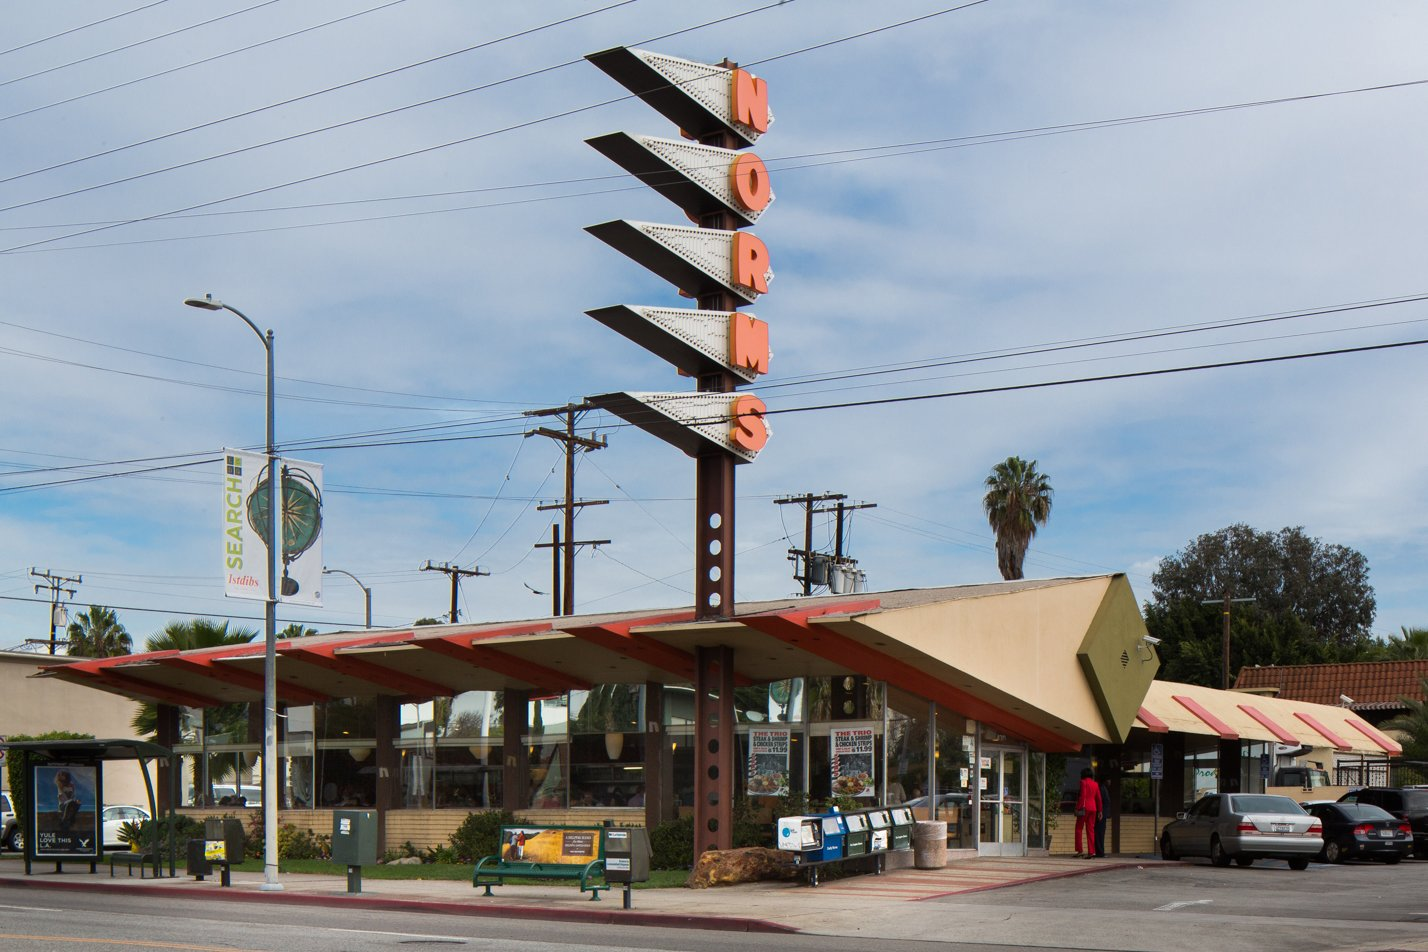 Los Angeles Cultural Heritage Commission Votes To Save Googie Design At Norms Dwell